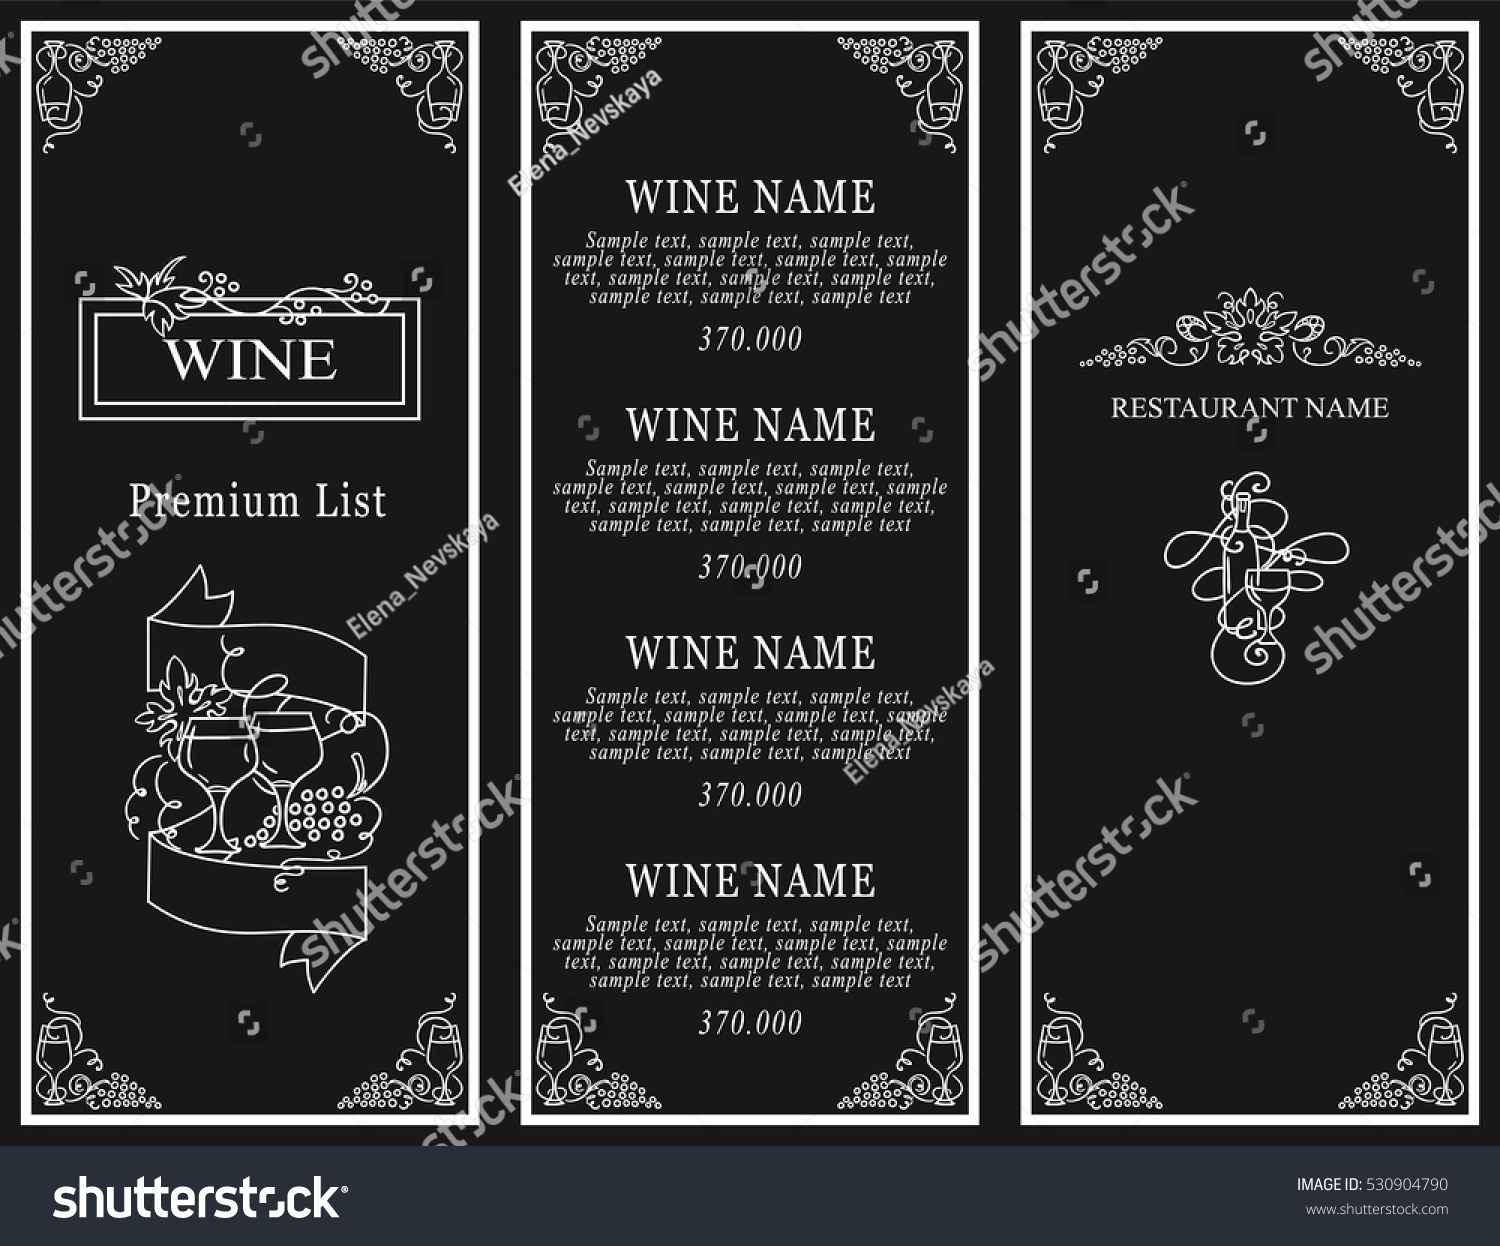 Vintage Design Of Restaurant Menu. Wine List Or Card Collection, Cover And  Page For